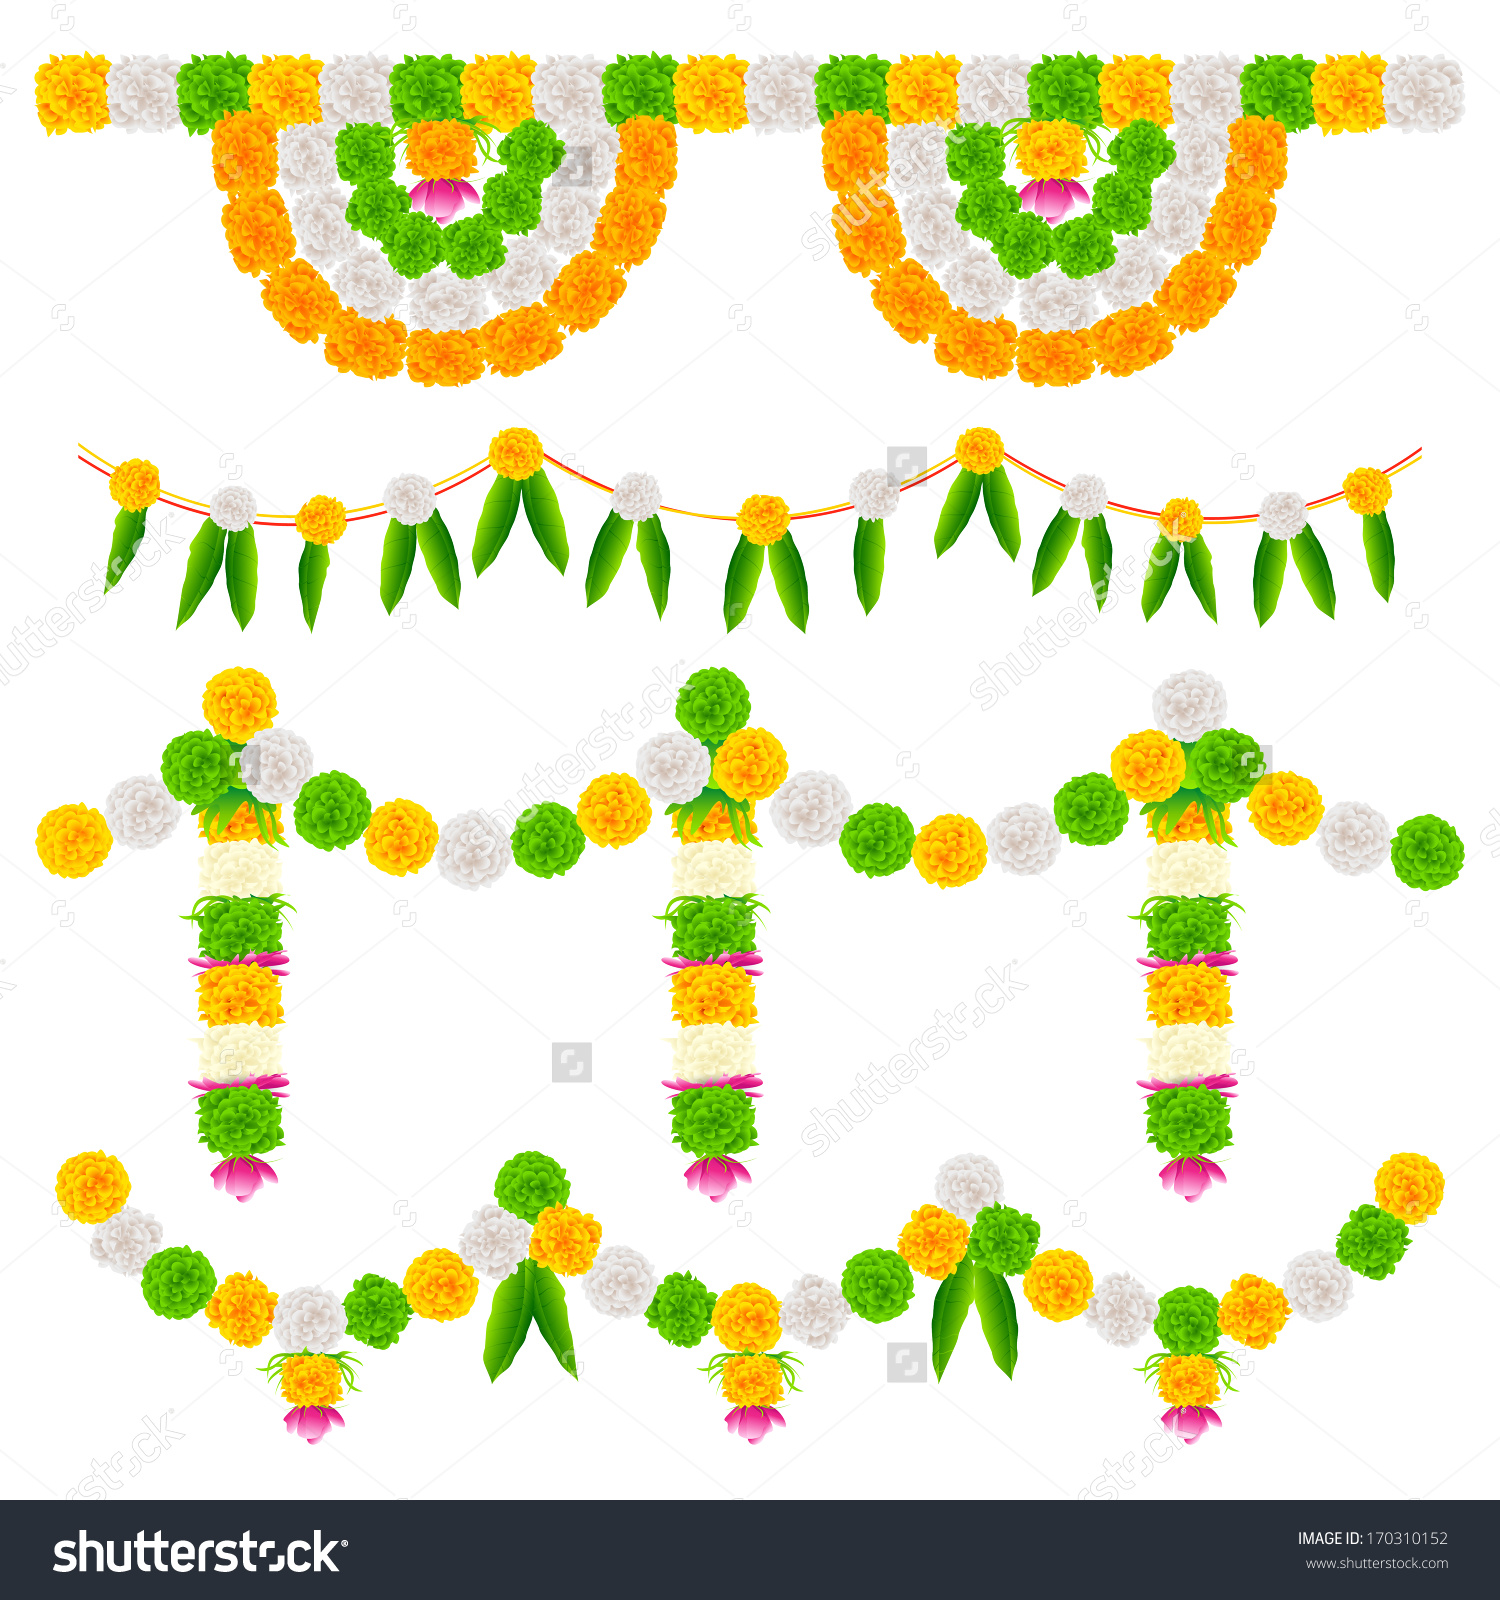 Indian flower clipart 20 free Cliparts   Download images ...